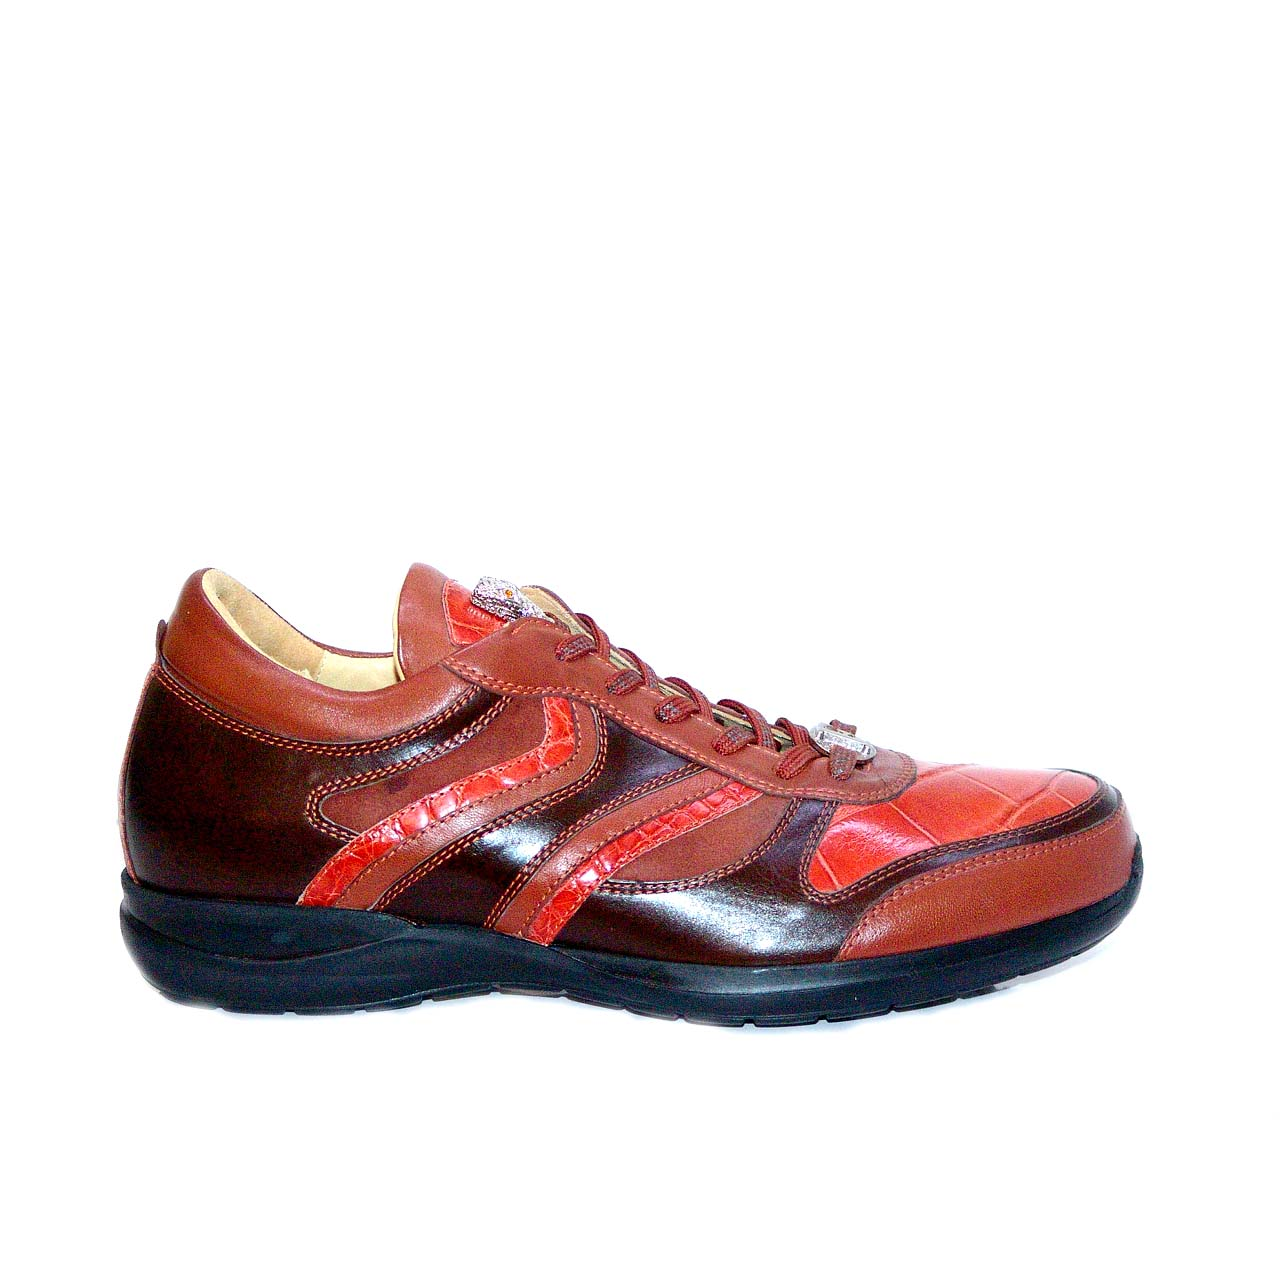 Fennix 3045 Alligator & Calfskin Two Tone Sneaker Rust